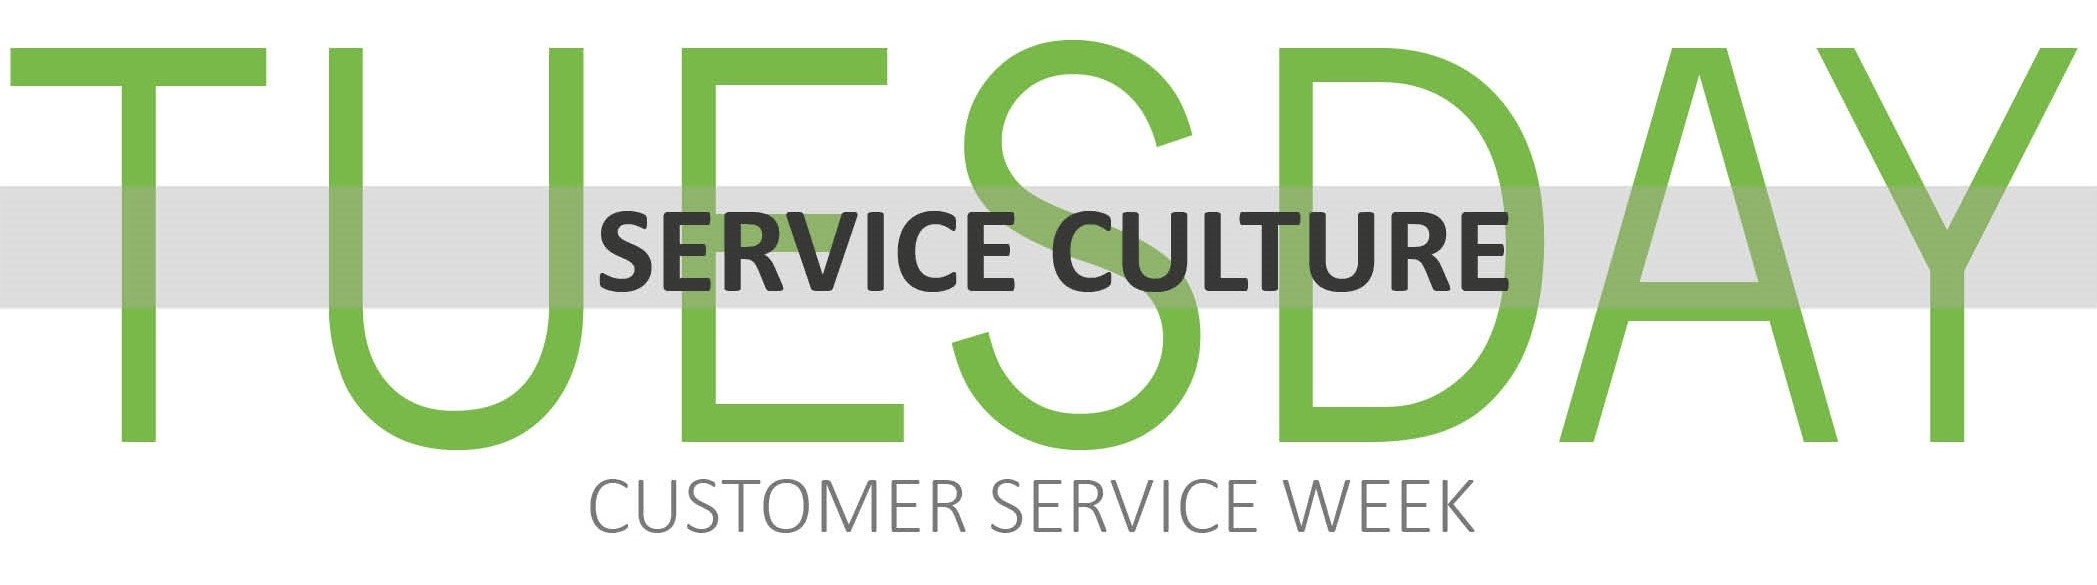 Customer Service Week - Tuesday